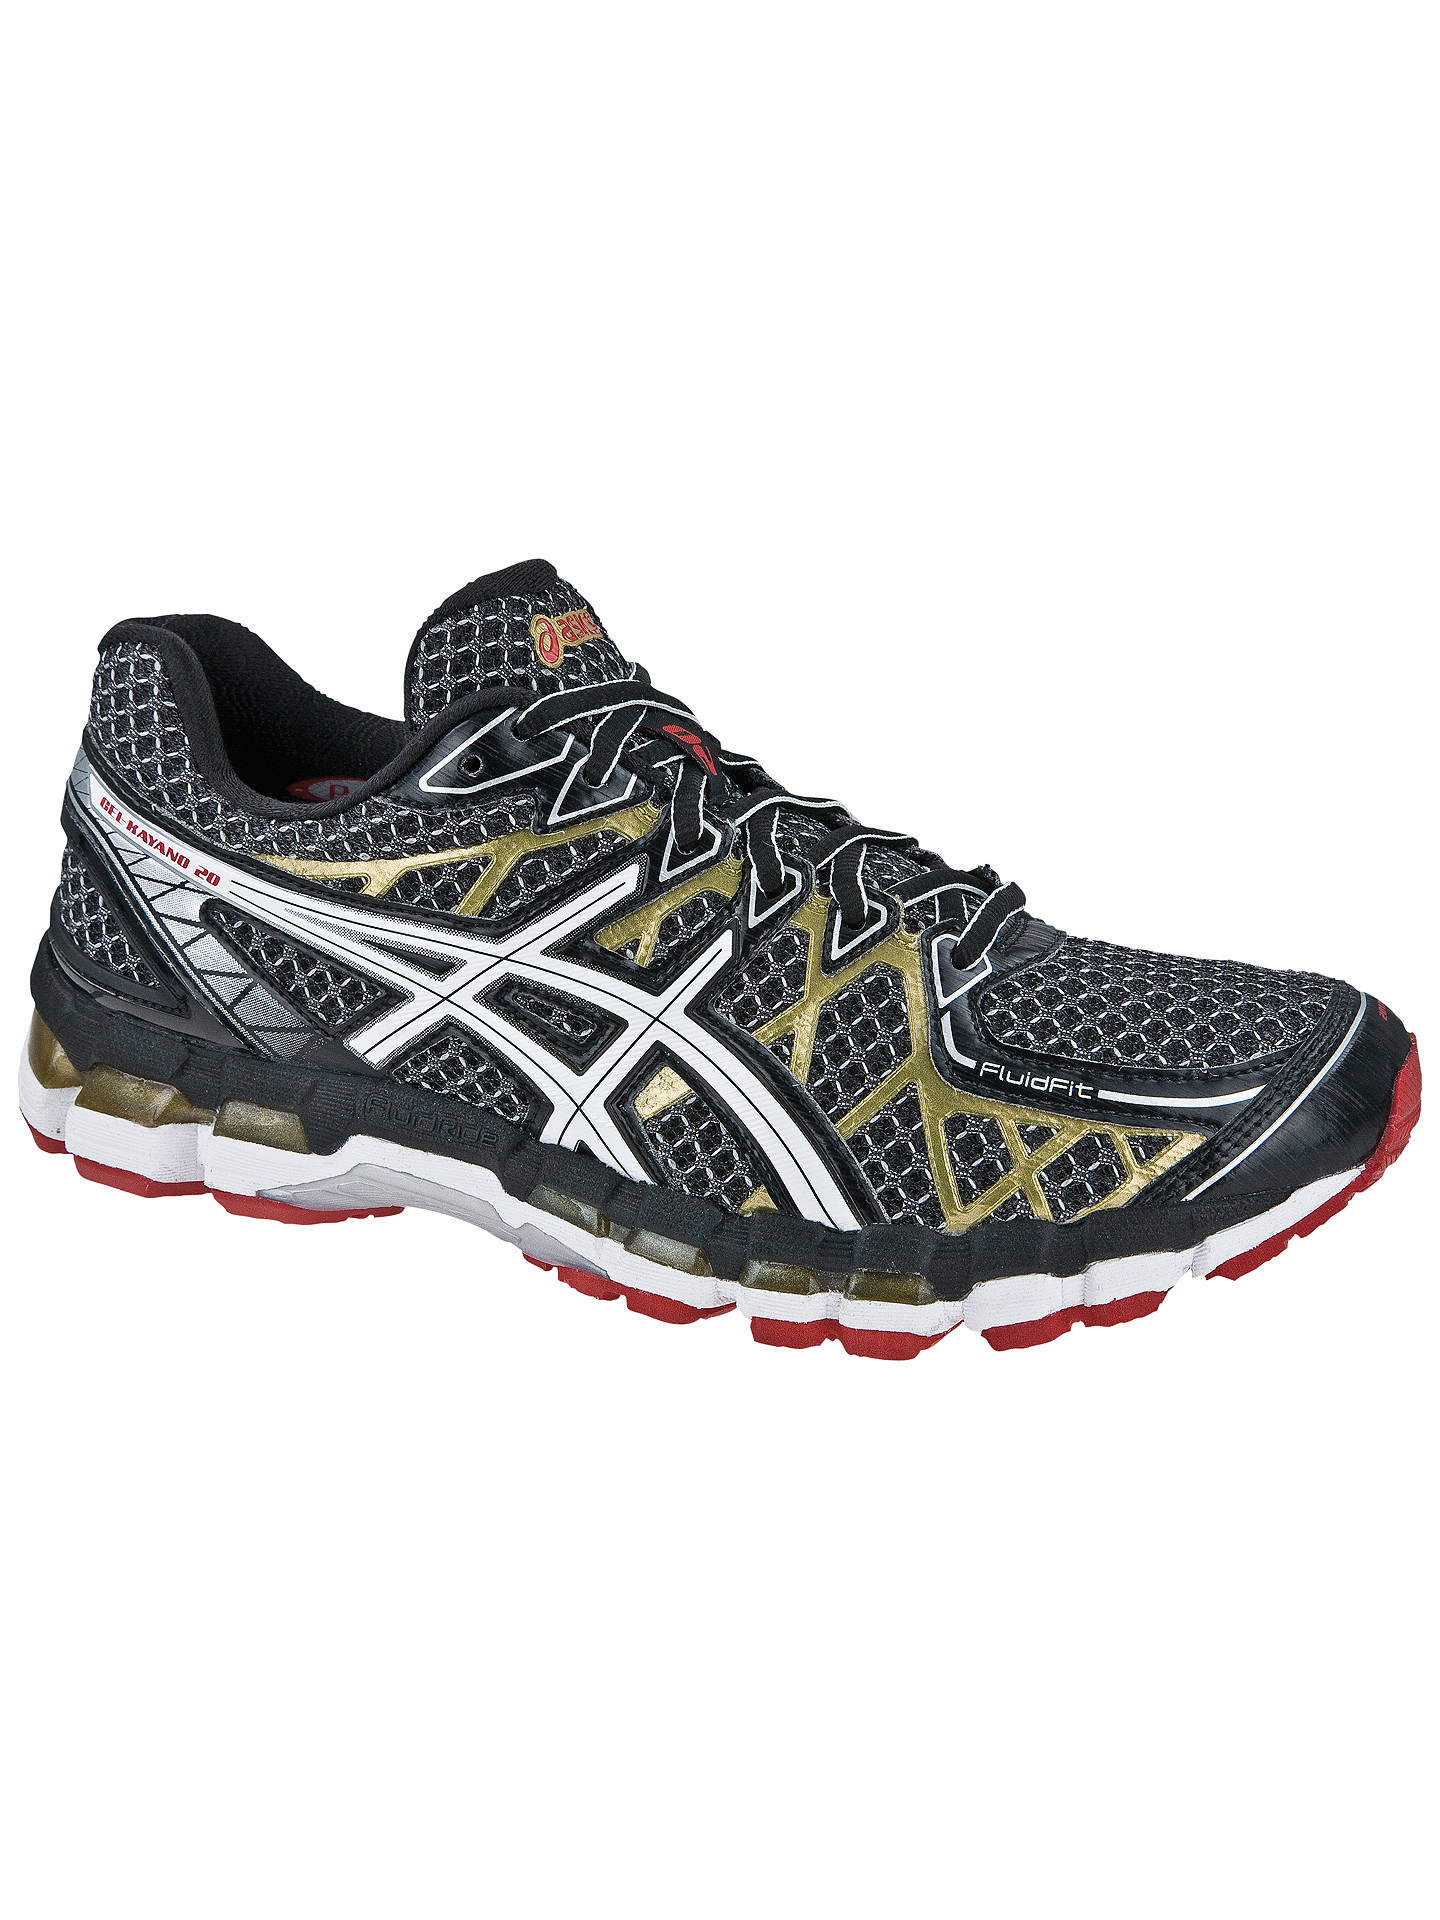 separation shoes dfd71 6e53f Buy Asics GEL-Kayano 20 Men s Running Shoes, Black White Gold, ...